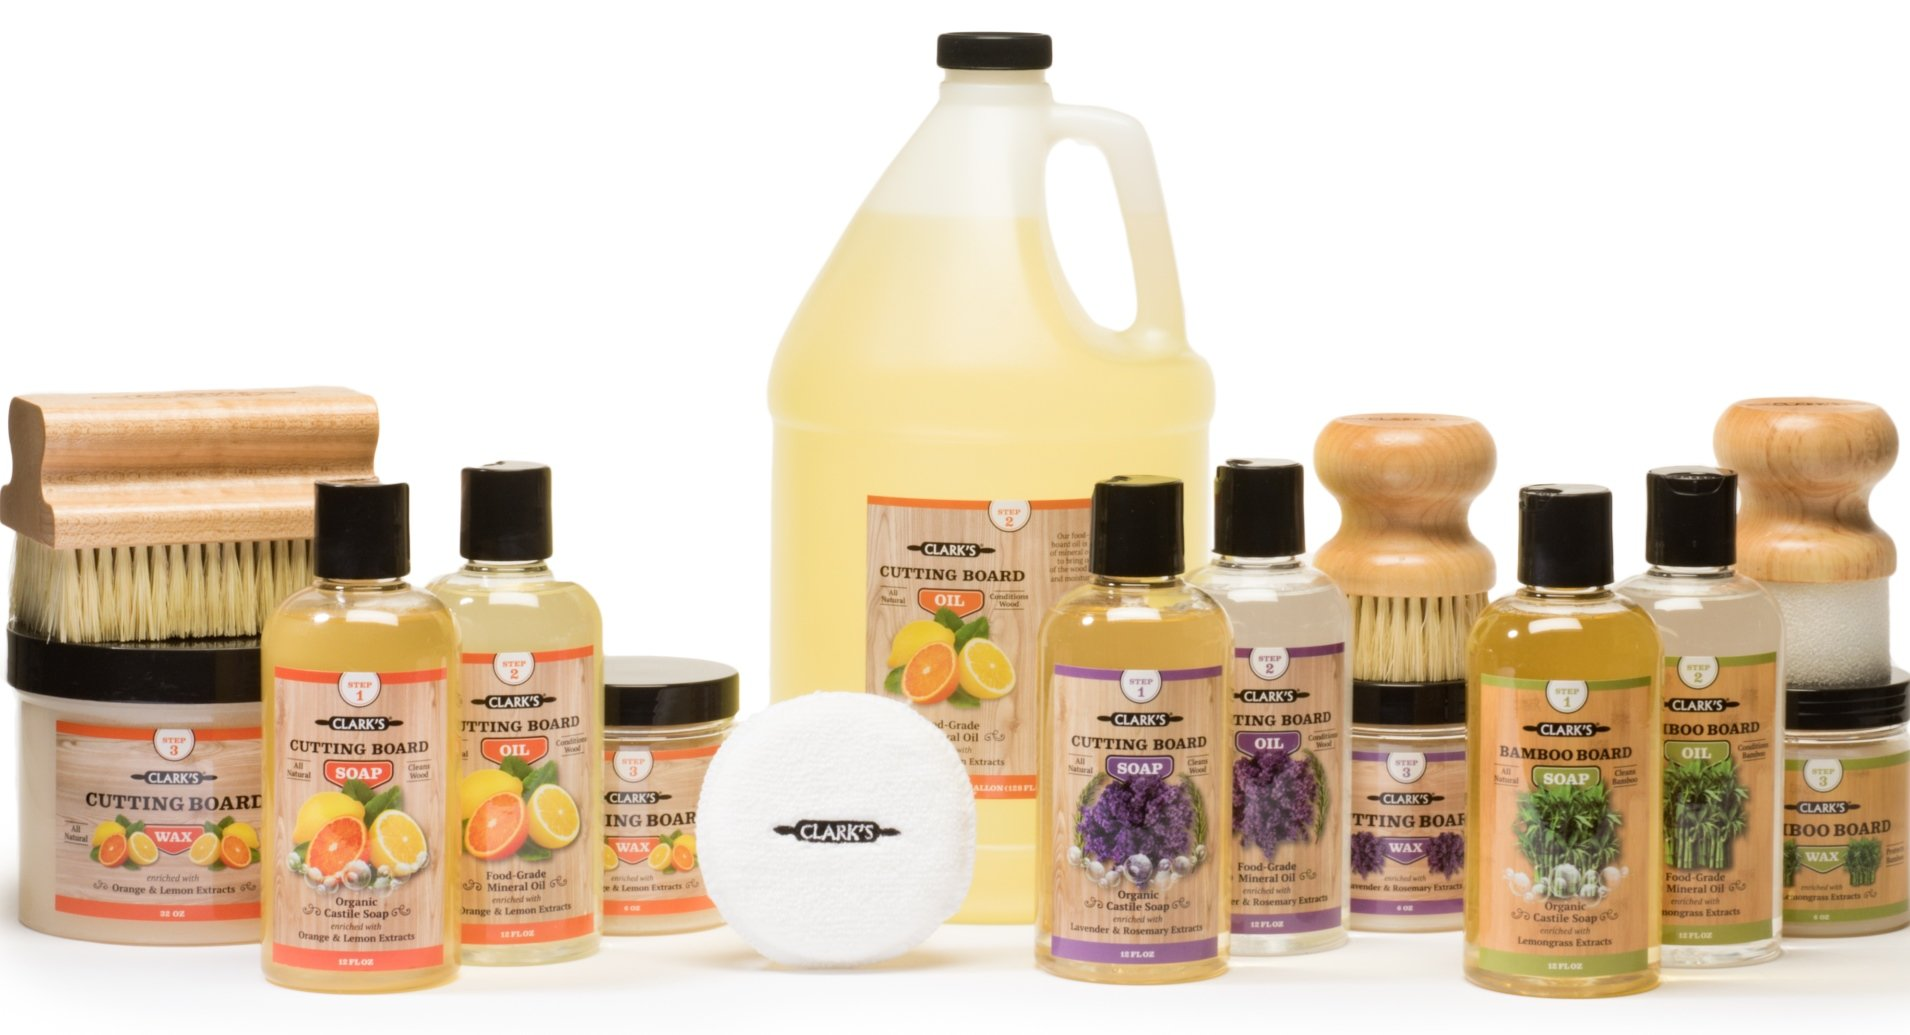 CLARKS Cutting Board Oil, Wax and Soap Products